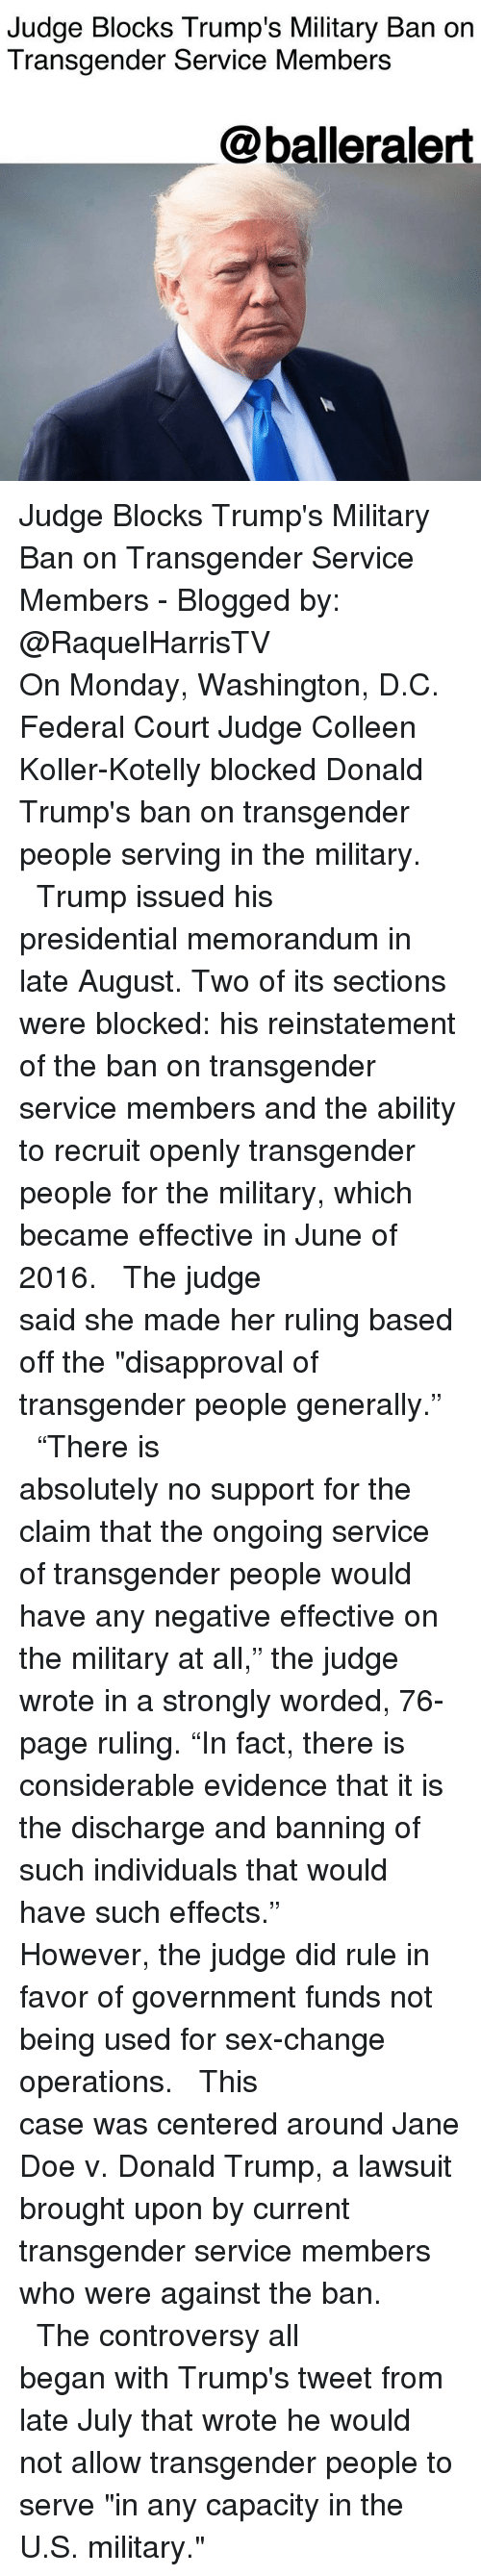 """Doe, Donald Trump, and Memes: Judge Blocks Trump's Military Ban on  Transgender Service Members  @balleralert Judge Blocks Trump's Military Ban on Transgender Service Members - Blogged by: @RaquelHarrisTV ⠀⠀⠀⠀⠀⠀⠀⠀⠀ ⠀⠀⠀⠀⠀⠀⠀⠀⠀ On Monday, Washington, D.C. Federal Court Judge Colleen Koller-Kotelly blocked Donald Trump's ban on transgender people serving in the military. ⠀⠀⠀⠀⠀⠀⠀⠀⠀ ⠀⠀⠀⠀⠀⠀⠀⠀⠀ Trump issued his presidential memorandum in late August. Two of its sections were blocked: his reinstatement of the ban on transgender service members and the ability to recruit openly transgender people for the military, which became effective in June of 2016. ⠀⠀⠀⠀⠀⠀⠀⠀⠀ ⠀⠀⠀⠀⠀⠀⠀⠀⠀ The judge said she made her ruling based off the """"disapproval of transgender people generally."""" ⠀⠀⠀⠀⠀⠀⠀⠀⠀ ⠀⠀⠀⠀⠀⠀⠀⠀⠀ """"There is absolutely no support for the claim that the ongoing service of transgender people would have any negative effective on the military at all,"""" the judge wrote in a strongly worded, 76-page ruling. """"In fact, there is considerable evidence that it is the discharge and banning of such individuals that would have such effects."""" ⠀⠀⠀⠀⠀⠀⠀⠀⠀ ⠀⠀⠀⠀⠀⠀⠀⠀⠀ However, the judge did rule in favor of government funds not being used for sex-change operations. ⠀⠀⠀⠀⠀⠀⠀⠀⠀ ⠀⠀⠀⠀⠀⠀⠀⠀⠀ This case was centered around Jane Doe v. Donald Trump, a lawsuit brought upon by current transgender service members who were against the ban. ⠀⠀⠀⠀⠀⠀⠀⠀⠀ ⠀⠀⠀⠀⠀⠀⠀⠀⠀ The controversy all began with Trump's tweet from late July that wrote he would not allow transgender people to serve """"in any capacity in the U.S. military."""""""